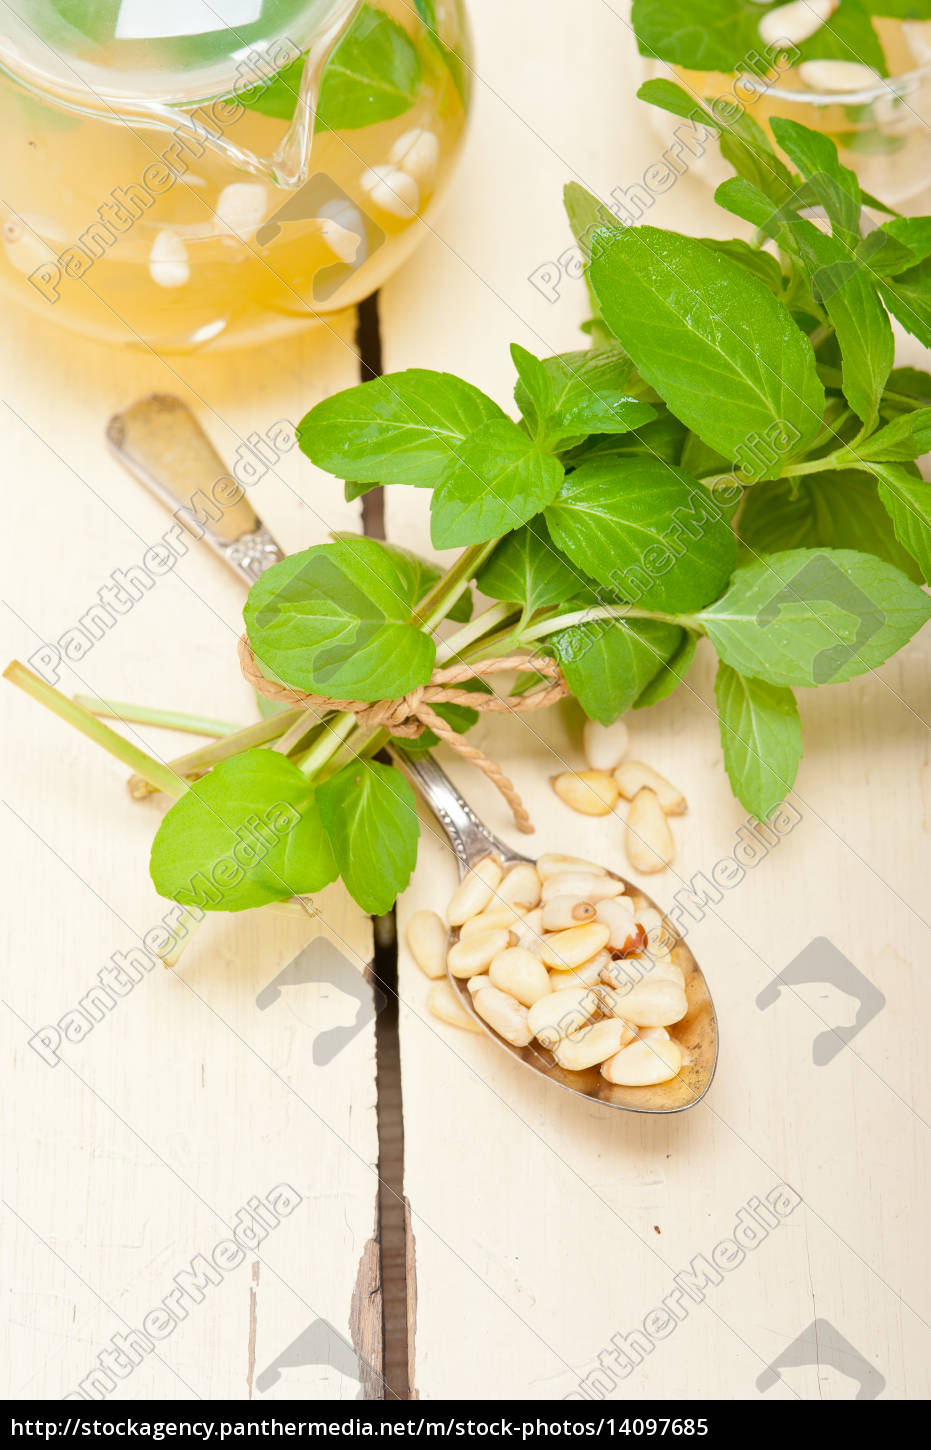 arab, traditional, mint, and, pine, nuts - 14097685